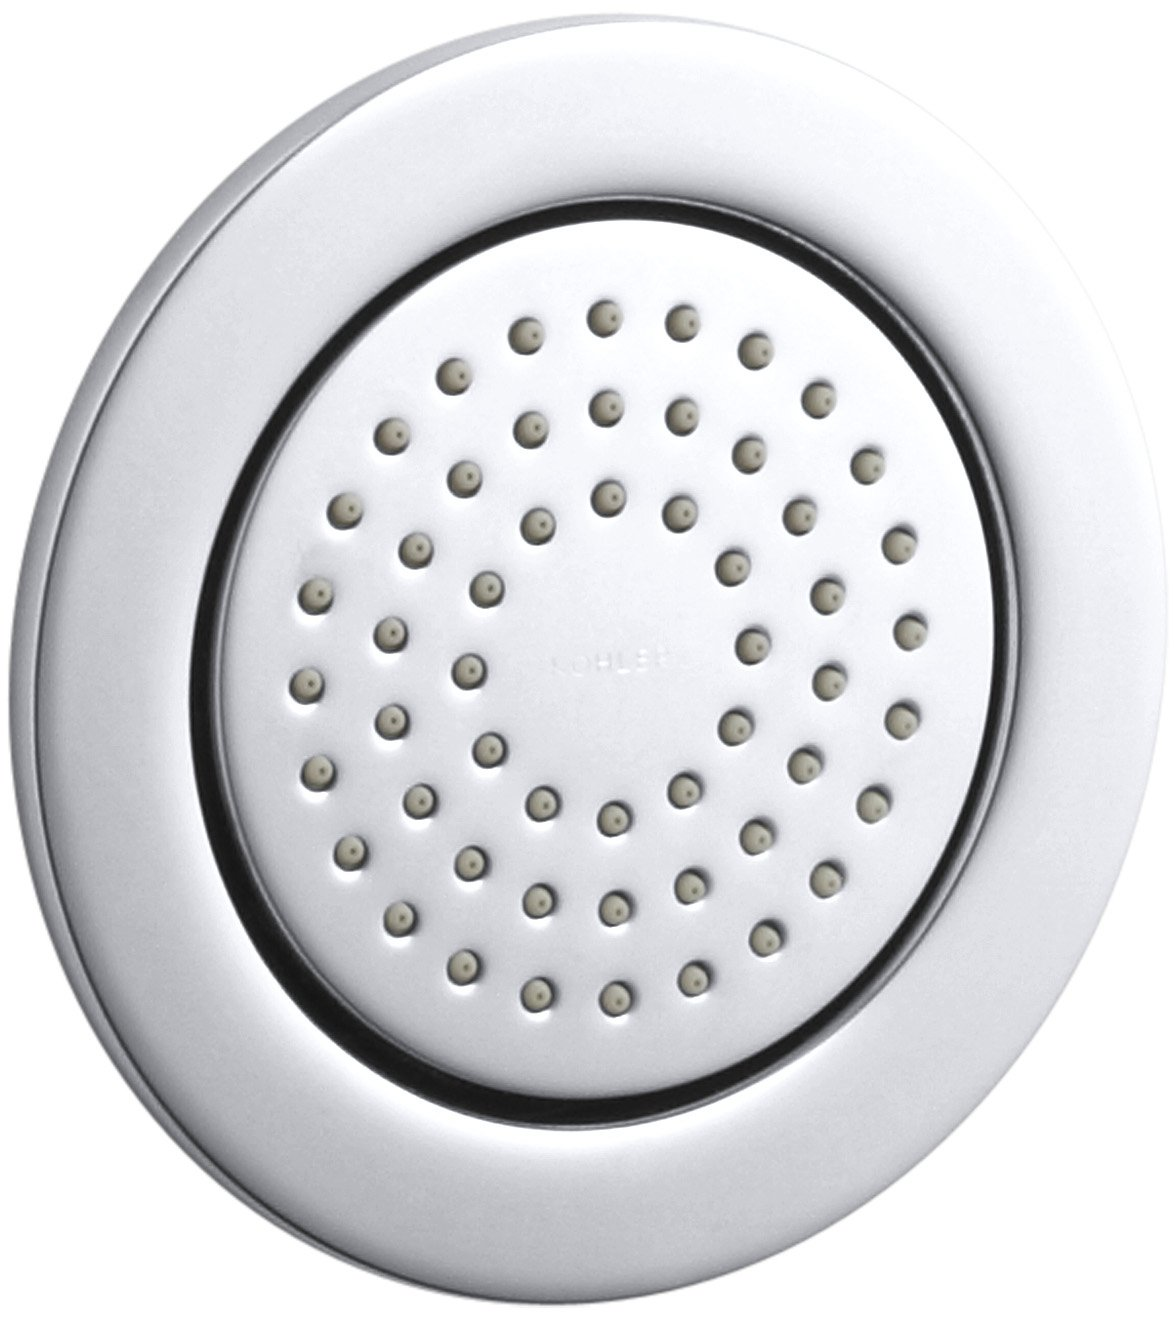 KOHLER K-8014-CP WaterTile Round 54-Nozzle Body Spray, Polished Chrome by Kohler (Image #1)